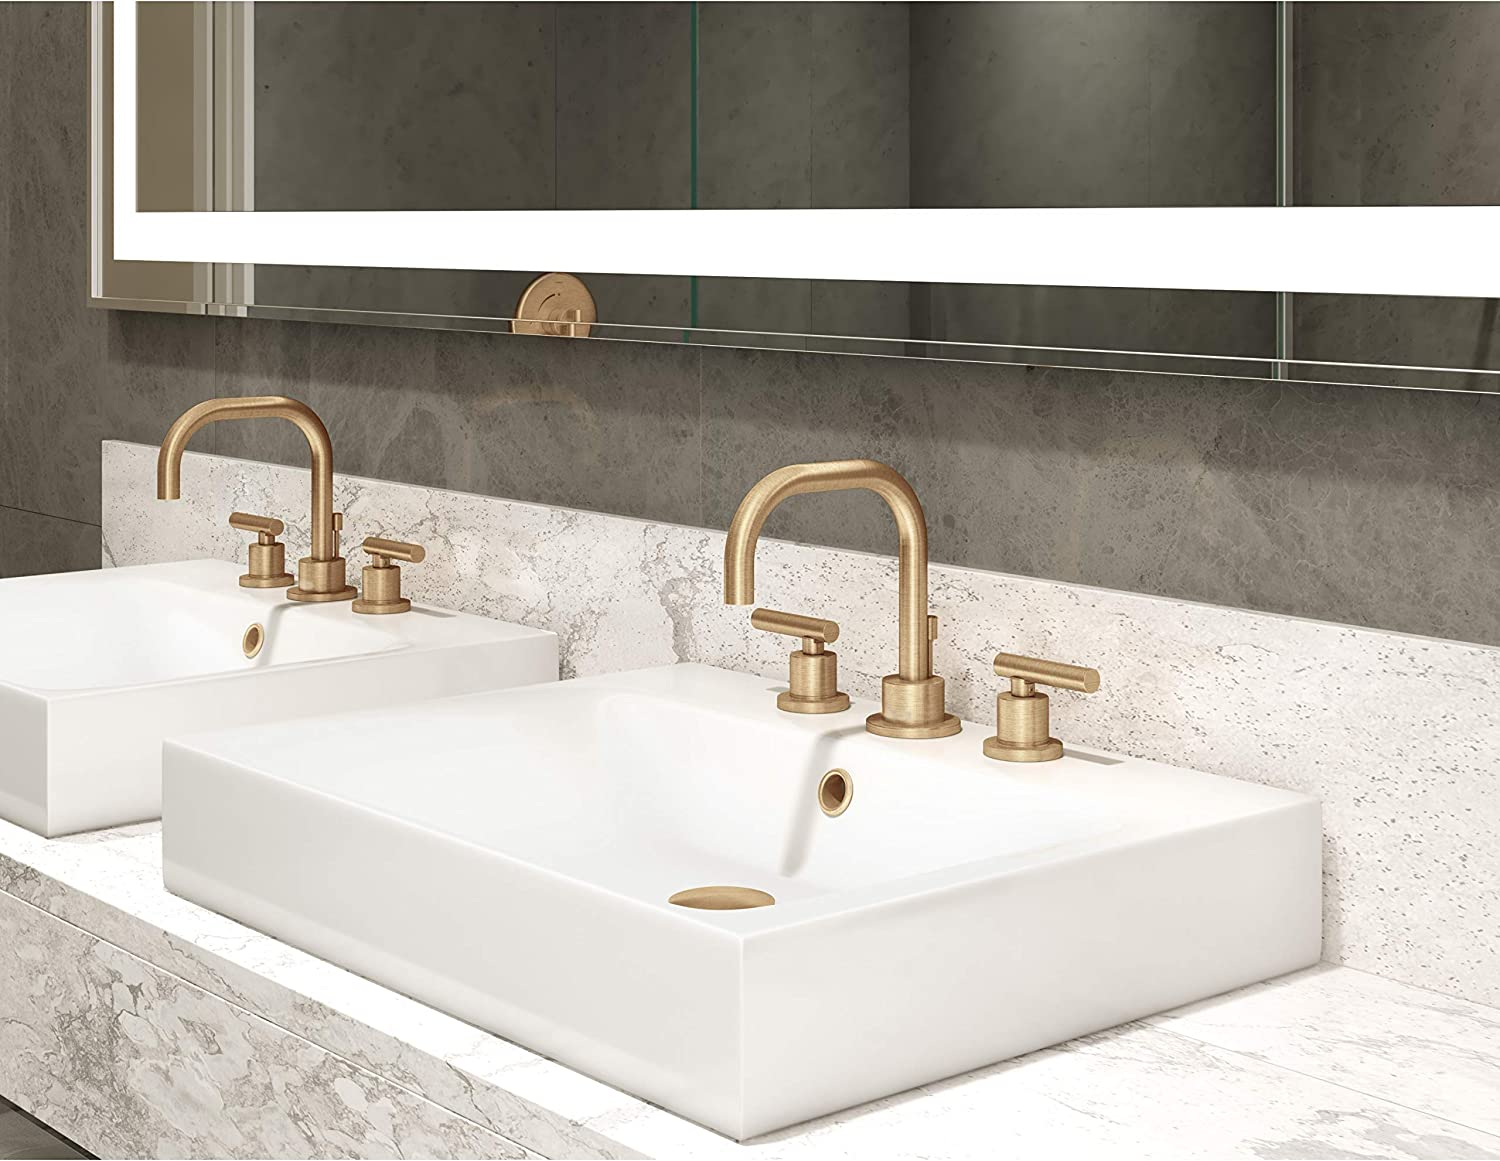 1.5 GPM Symmons SLW-3512-STN-1.5 Dia Widespread 2-Handle Bathroom Faucet with Drain Assembly in Satin Nickel